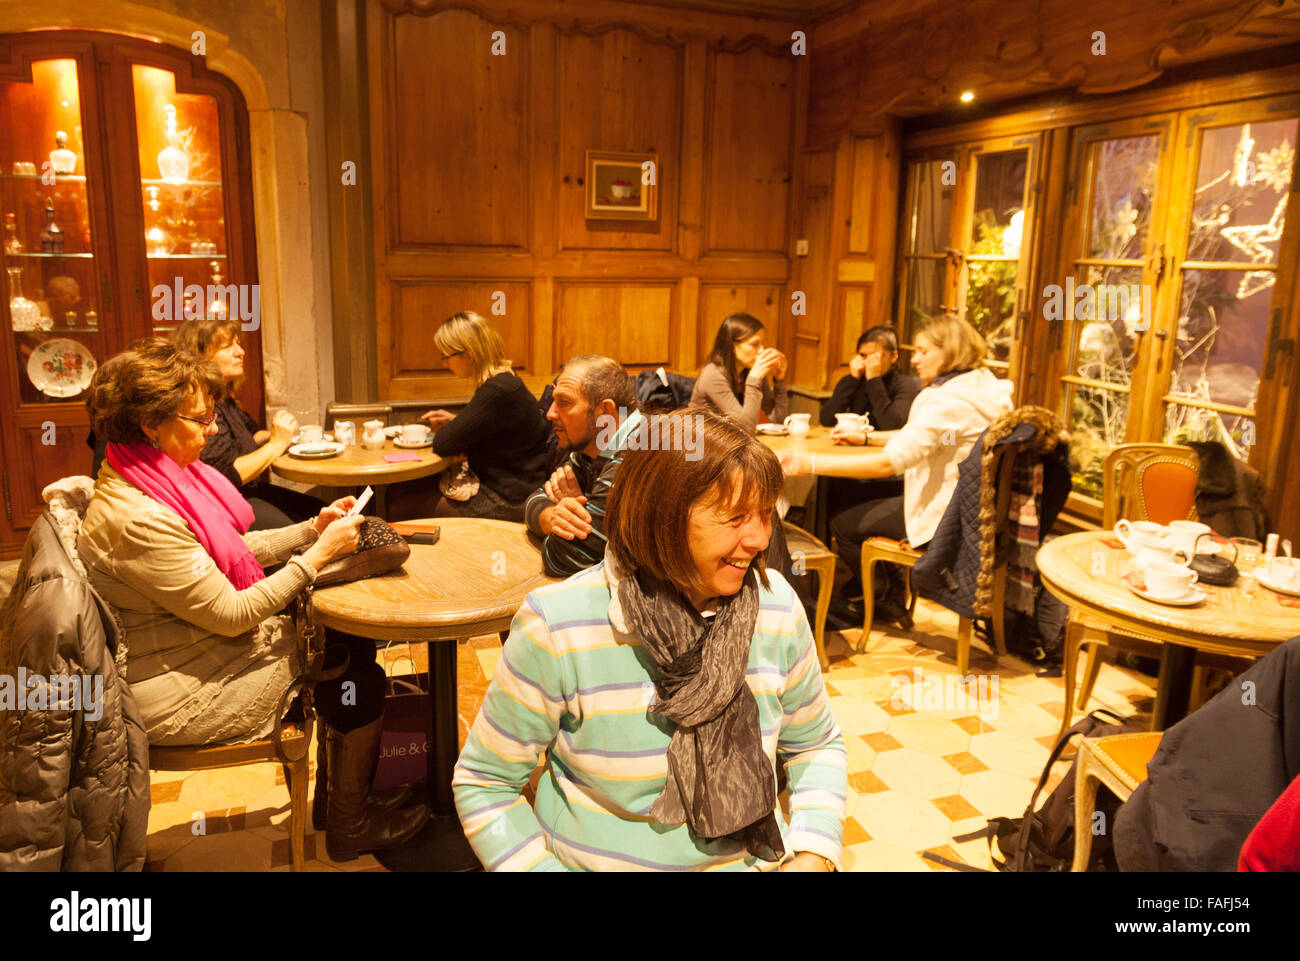 People having afternoon tea; Christian Salon de The ( Tea Rooms ), Strasbourg old town, Alsace France Europe - Stock Image